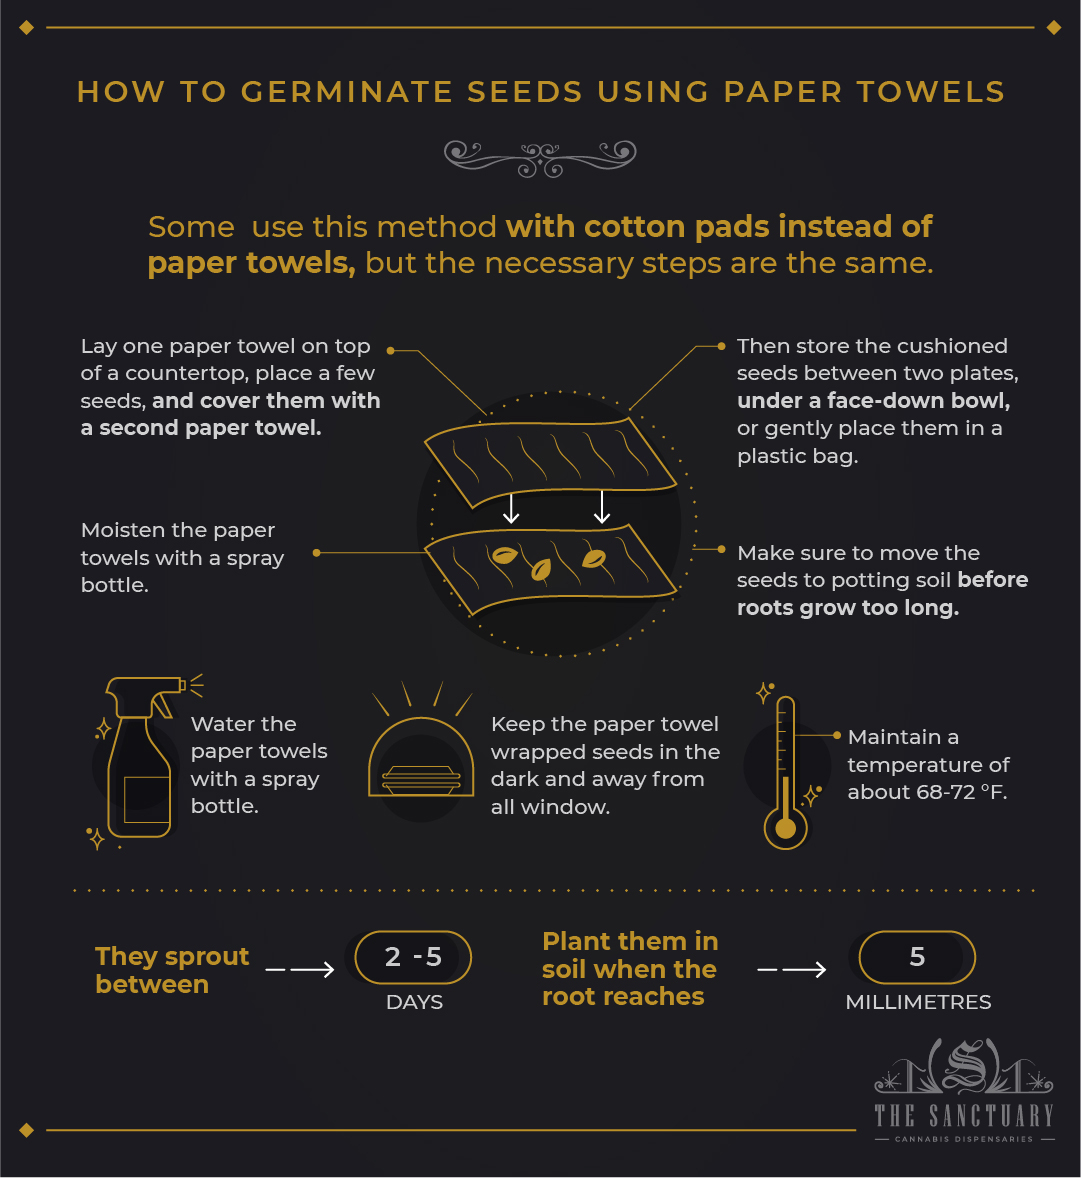 How to germinate seeds using paper towels